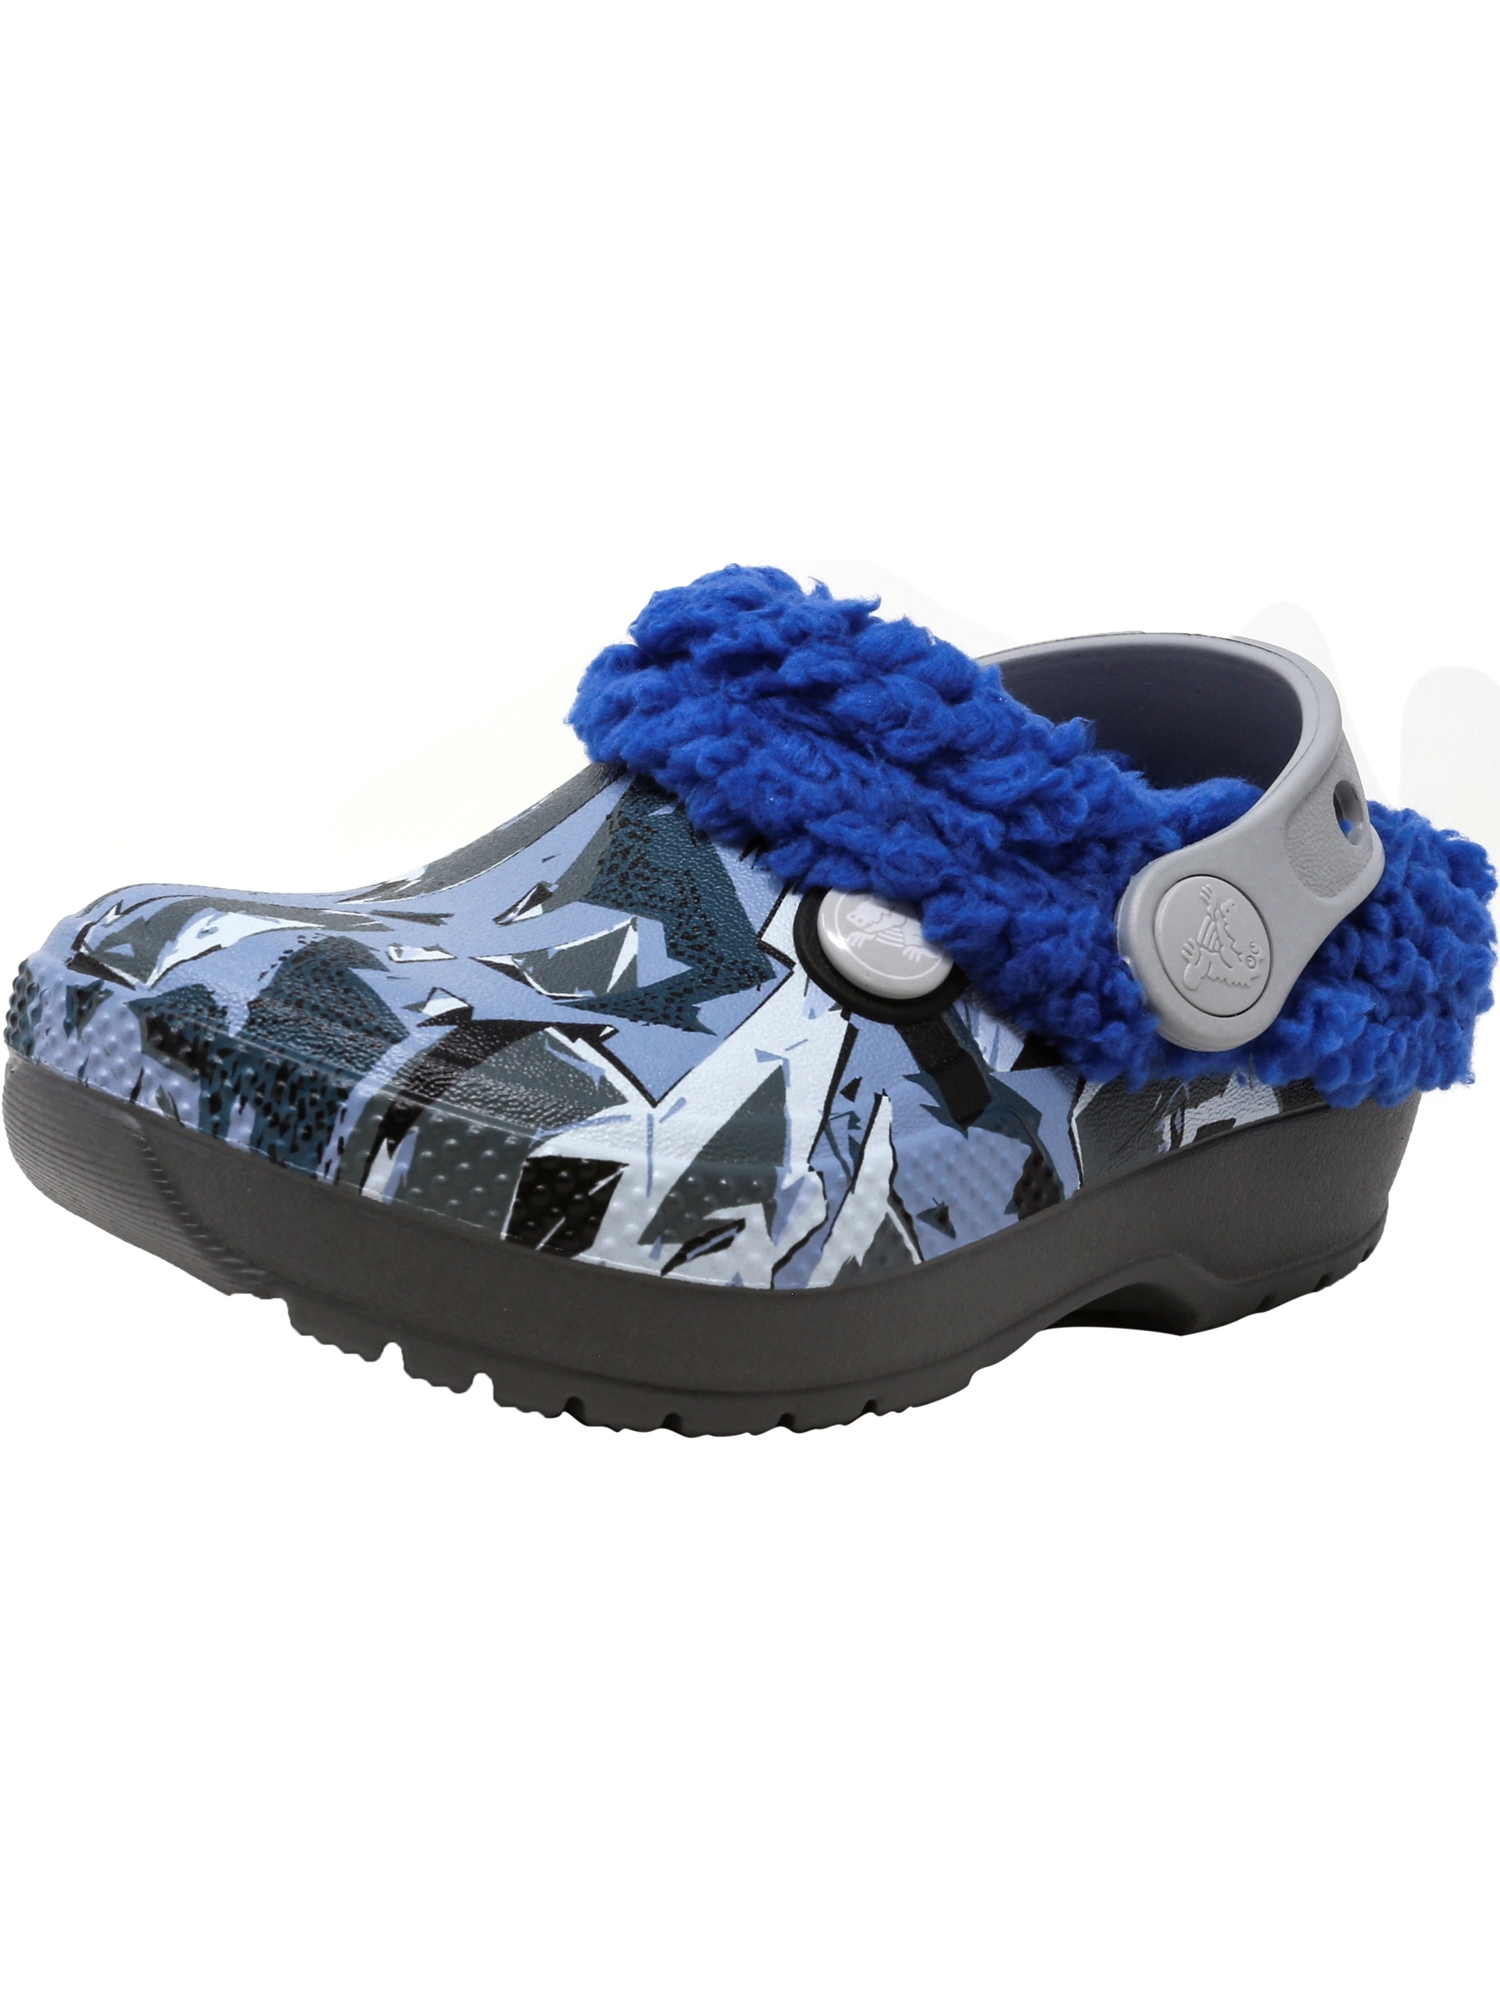 Crocs Classic Blitzen Iii Graphic Slate Grey   Blue Jean Ankle-High Clogs 1M by Crocs